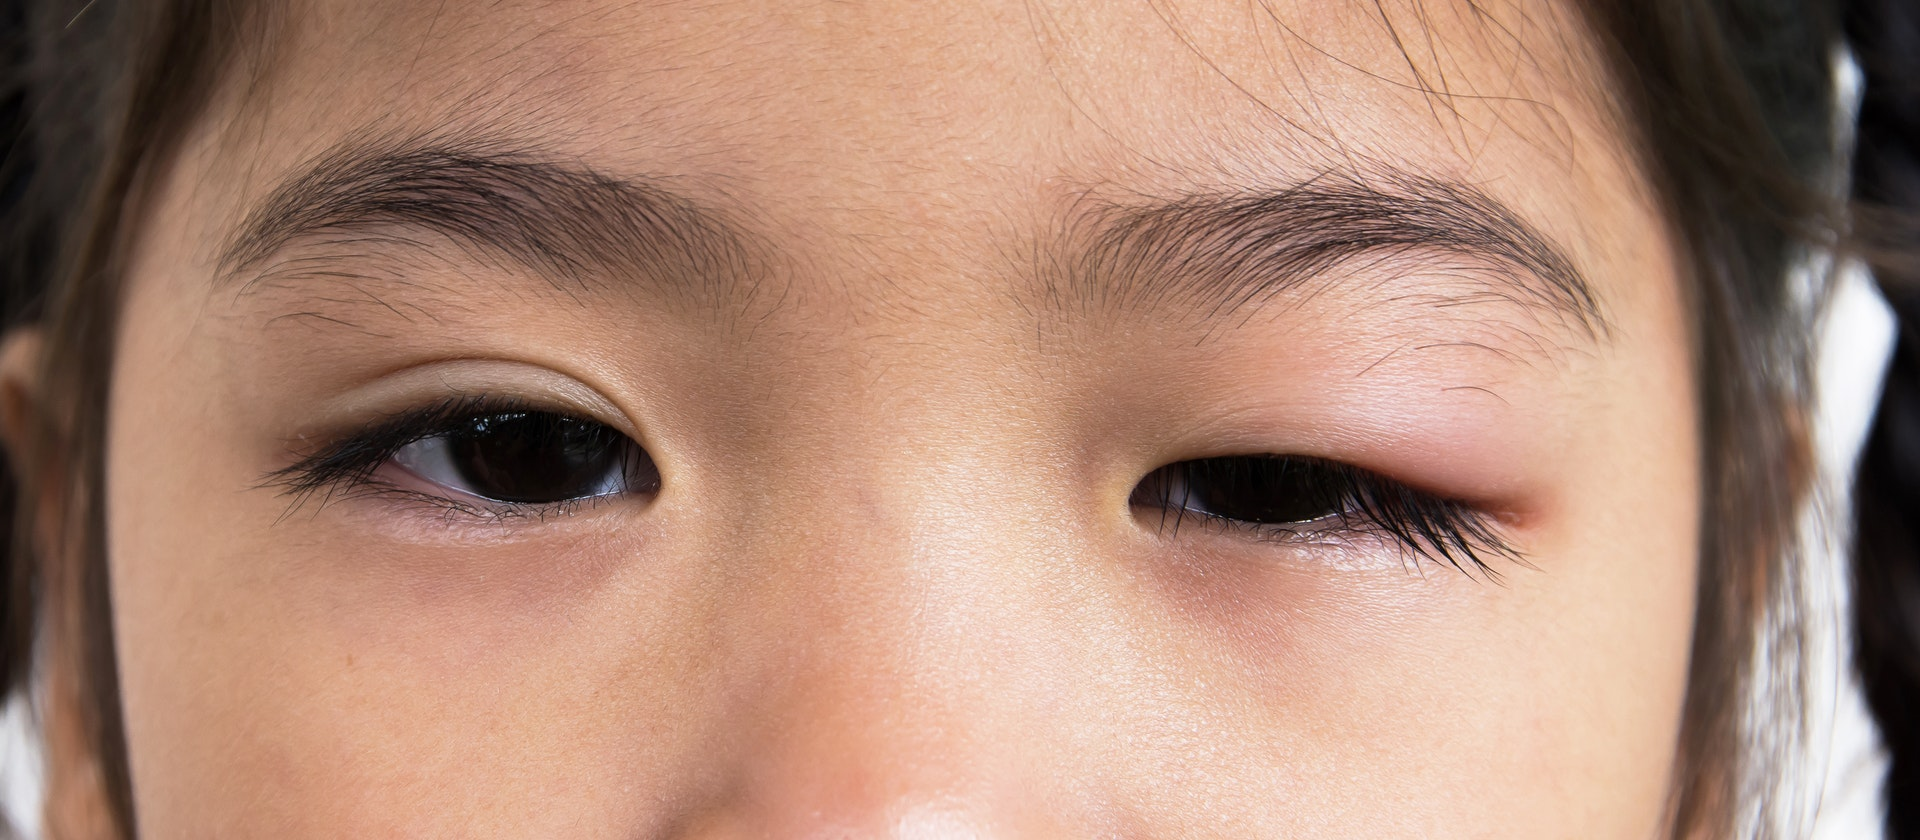 How to Reduce Swollen Eyelids: Step by Step Guide